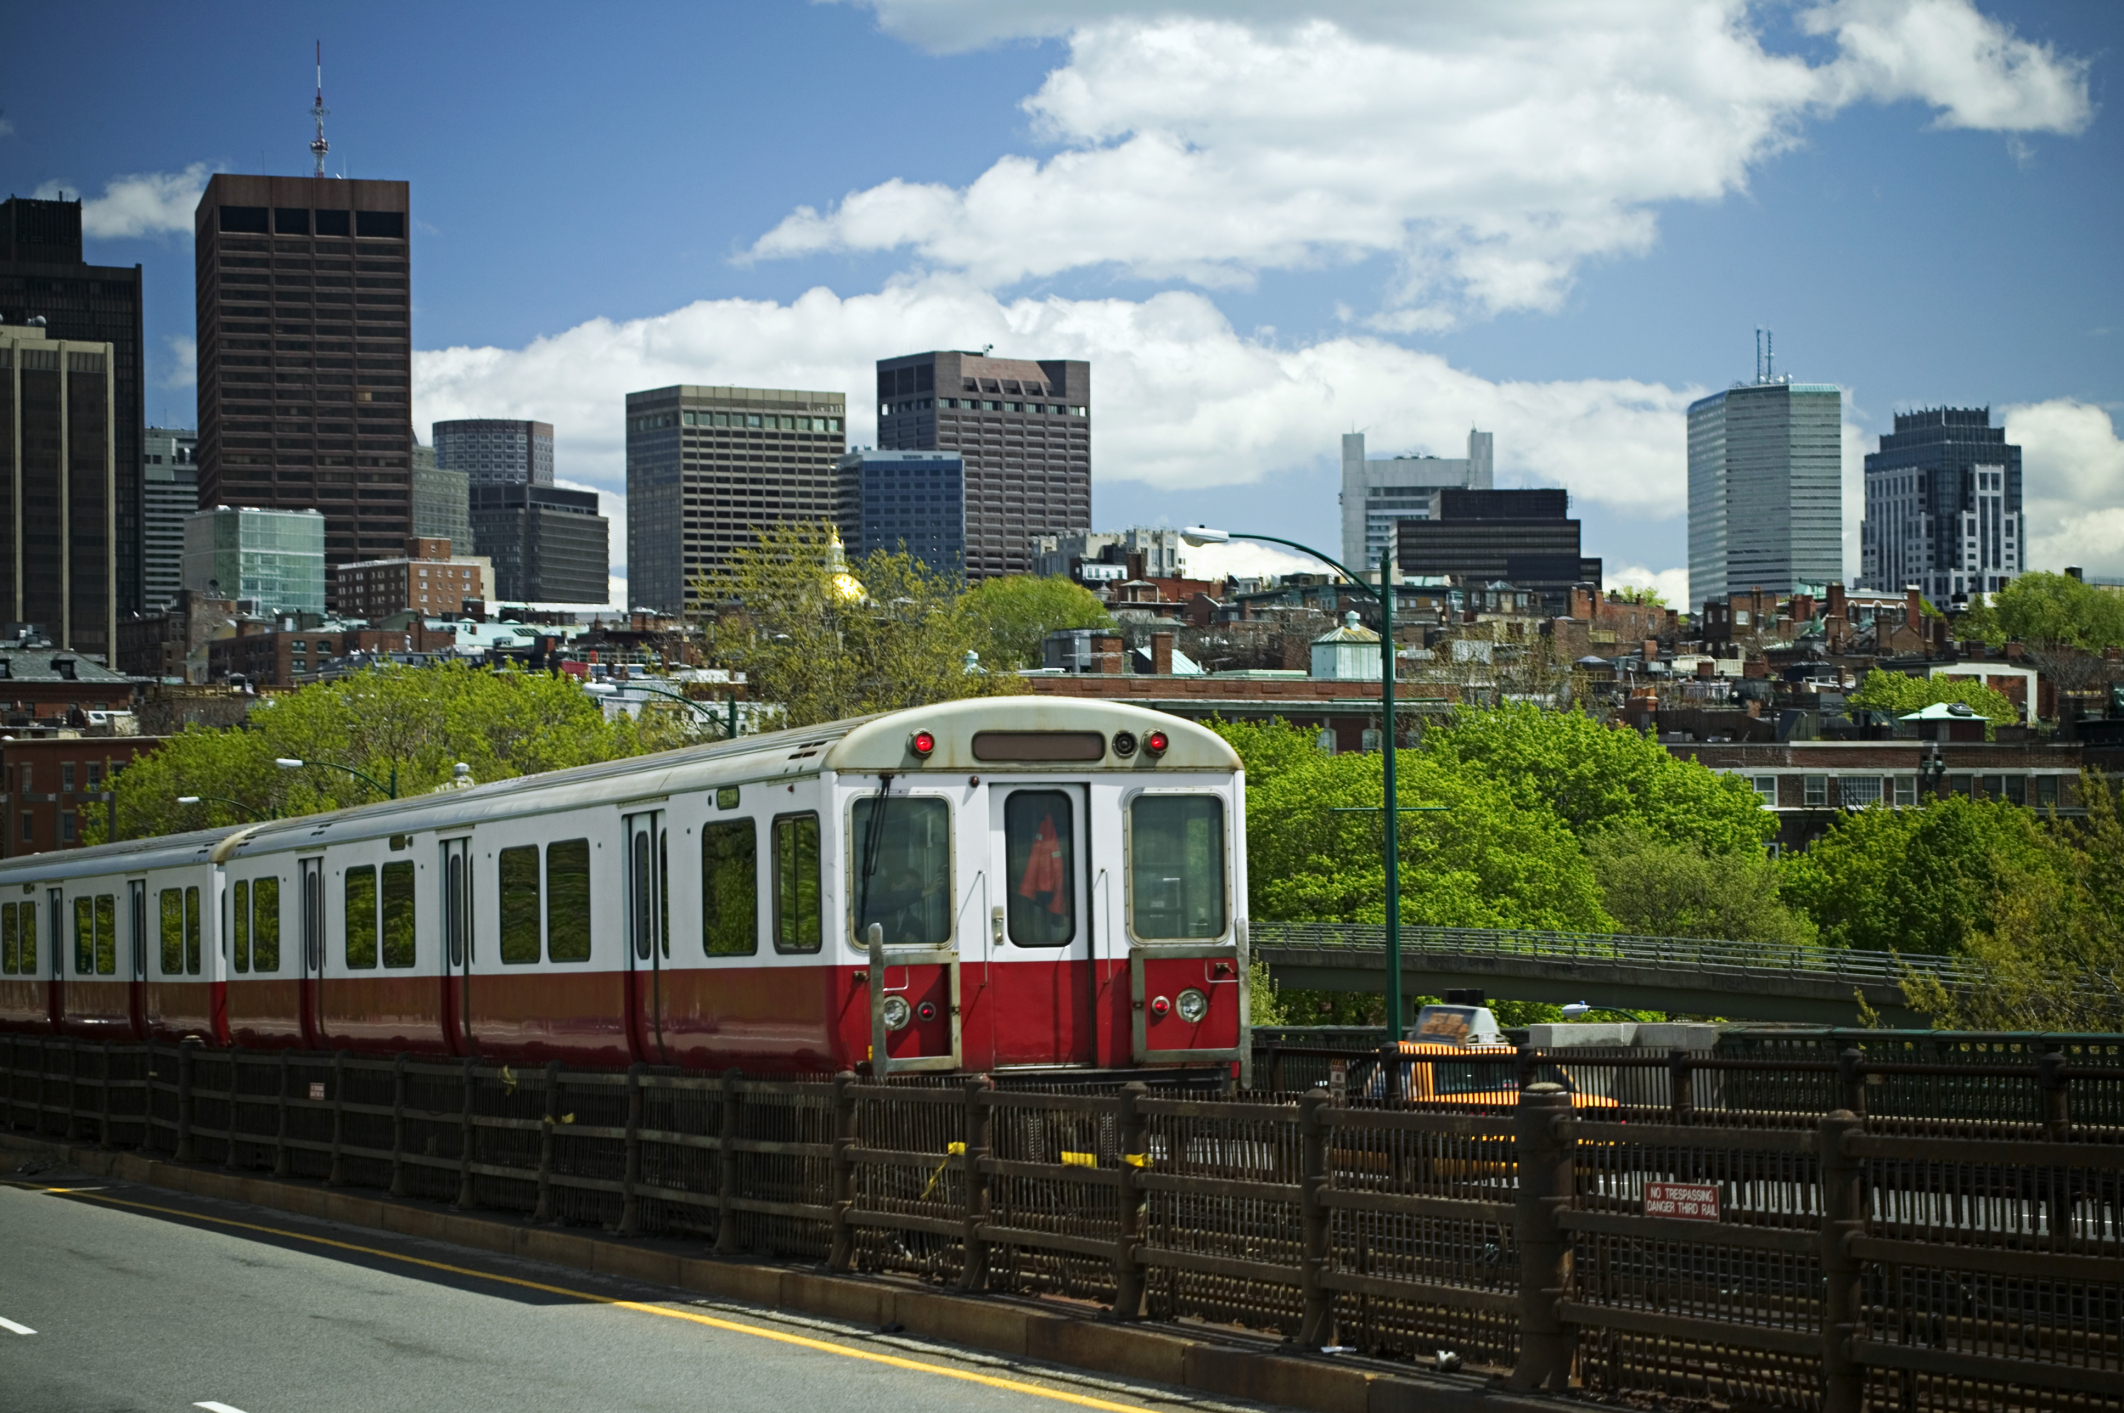 Red line train with Boston skyline